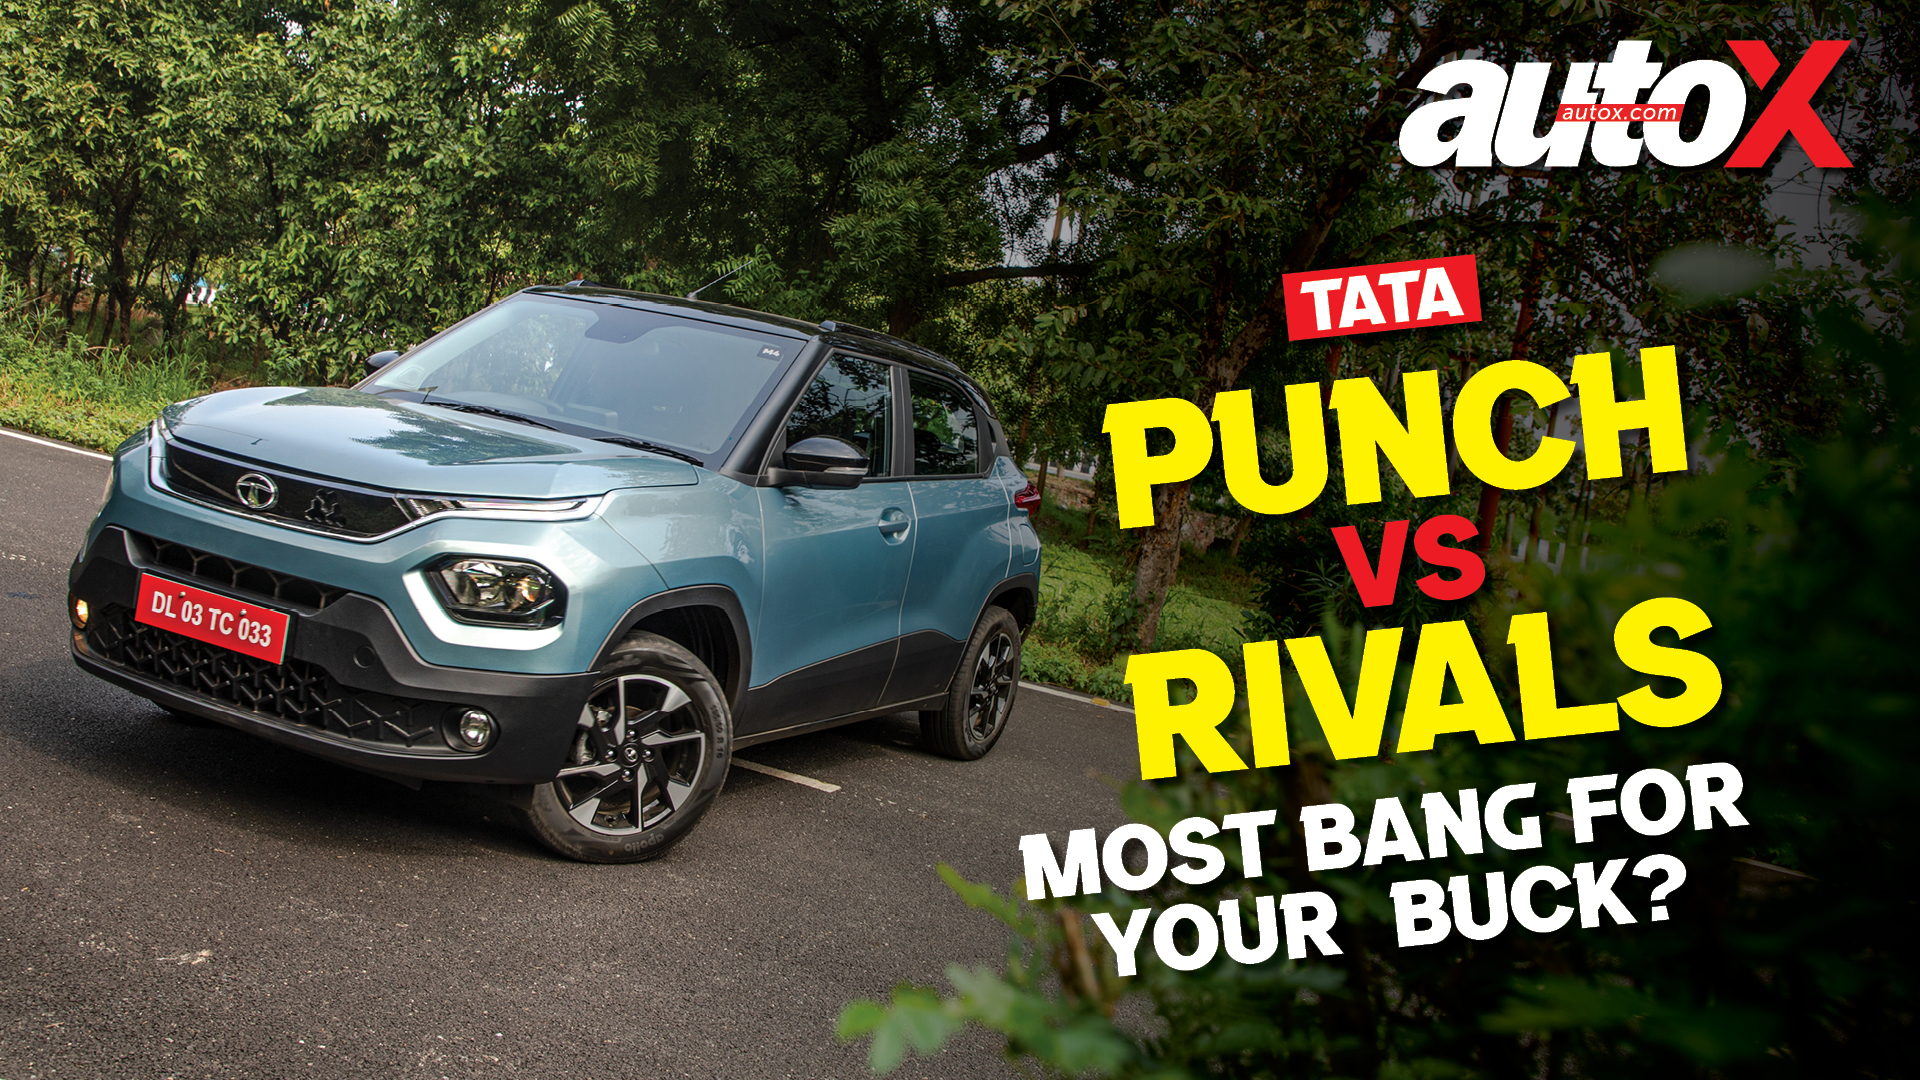 Tata Punch vs Rivals: Most bang for your buck? | Comparison | autoX